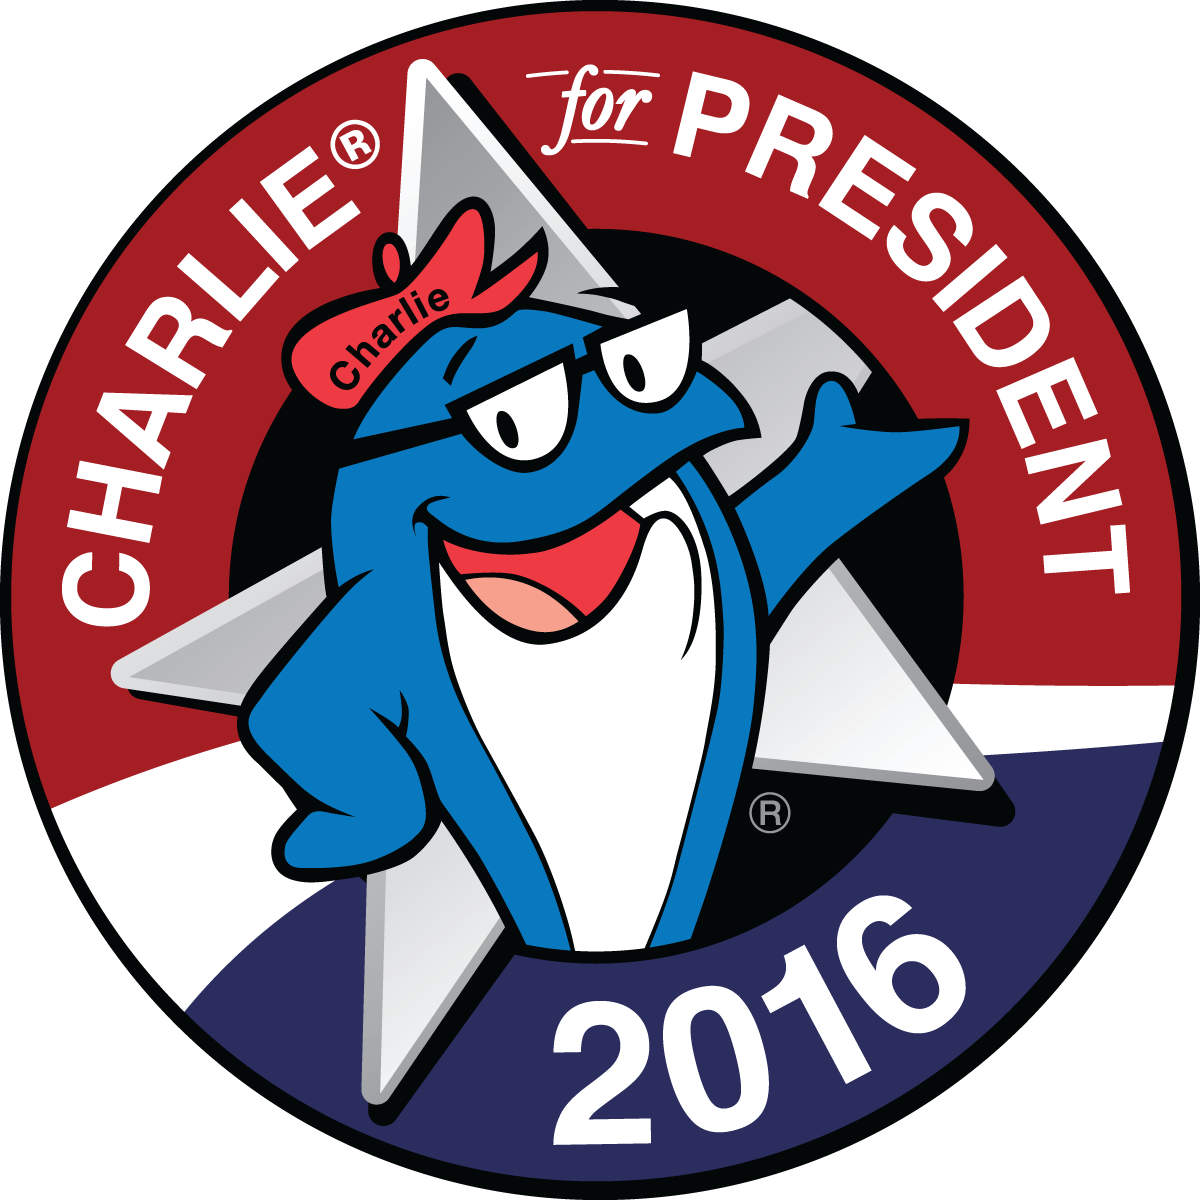 Tuna clipart charlie. Starkist for president jam